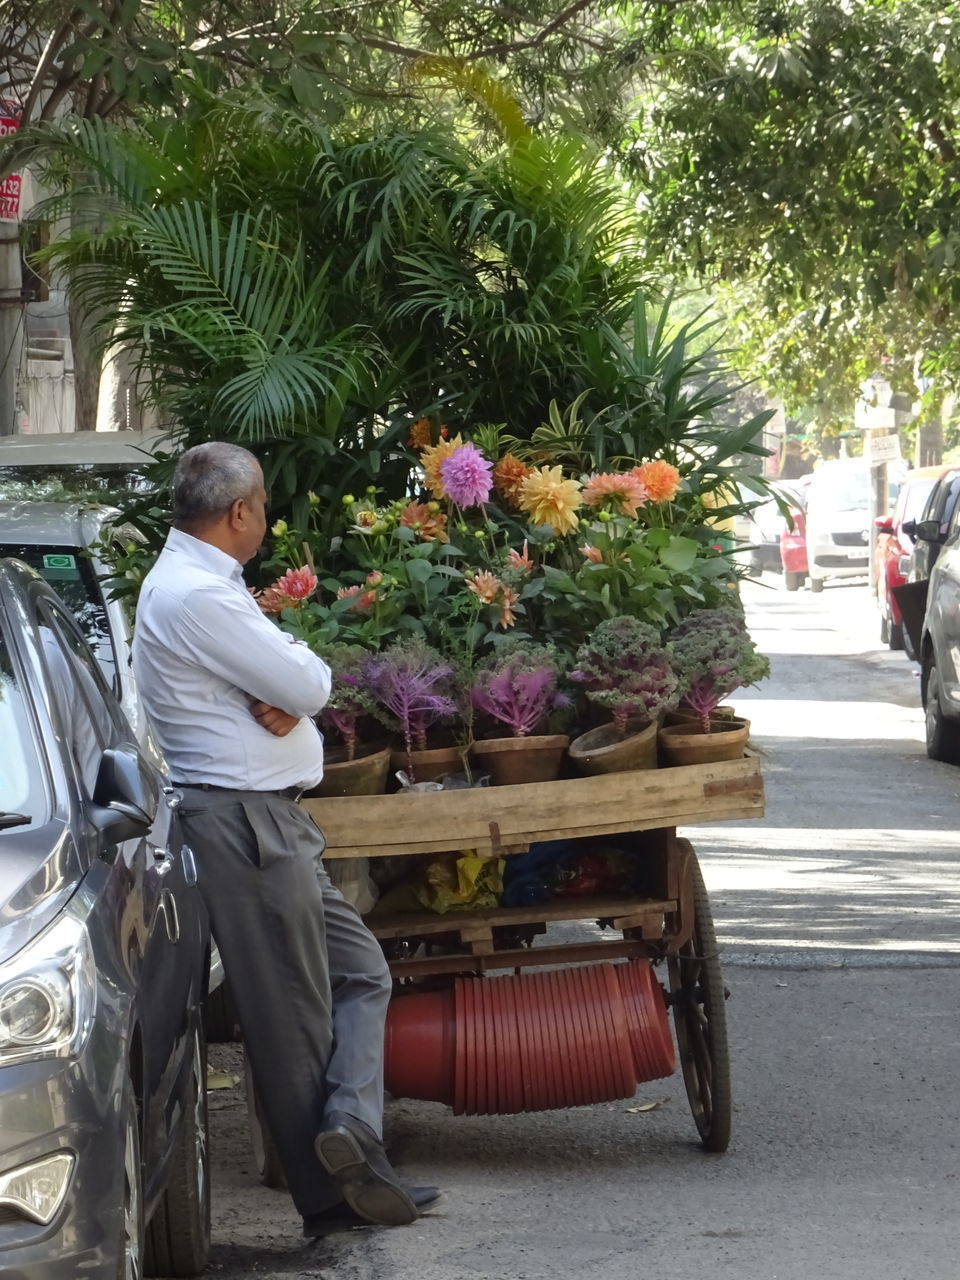 plant, flowering plant, flower, real people, men, transportation, street, day, land vehicle, one person, mode of transportation, tree, city, rear view, nature, incidental people, road, motor vehicle, lifestyles, outdoors, flower arrangement, bouquet